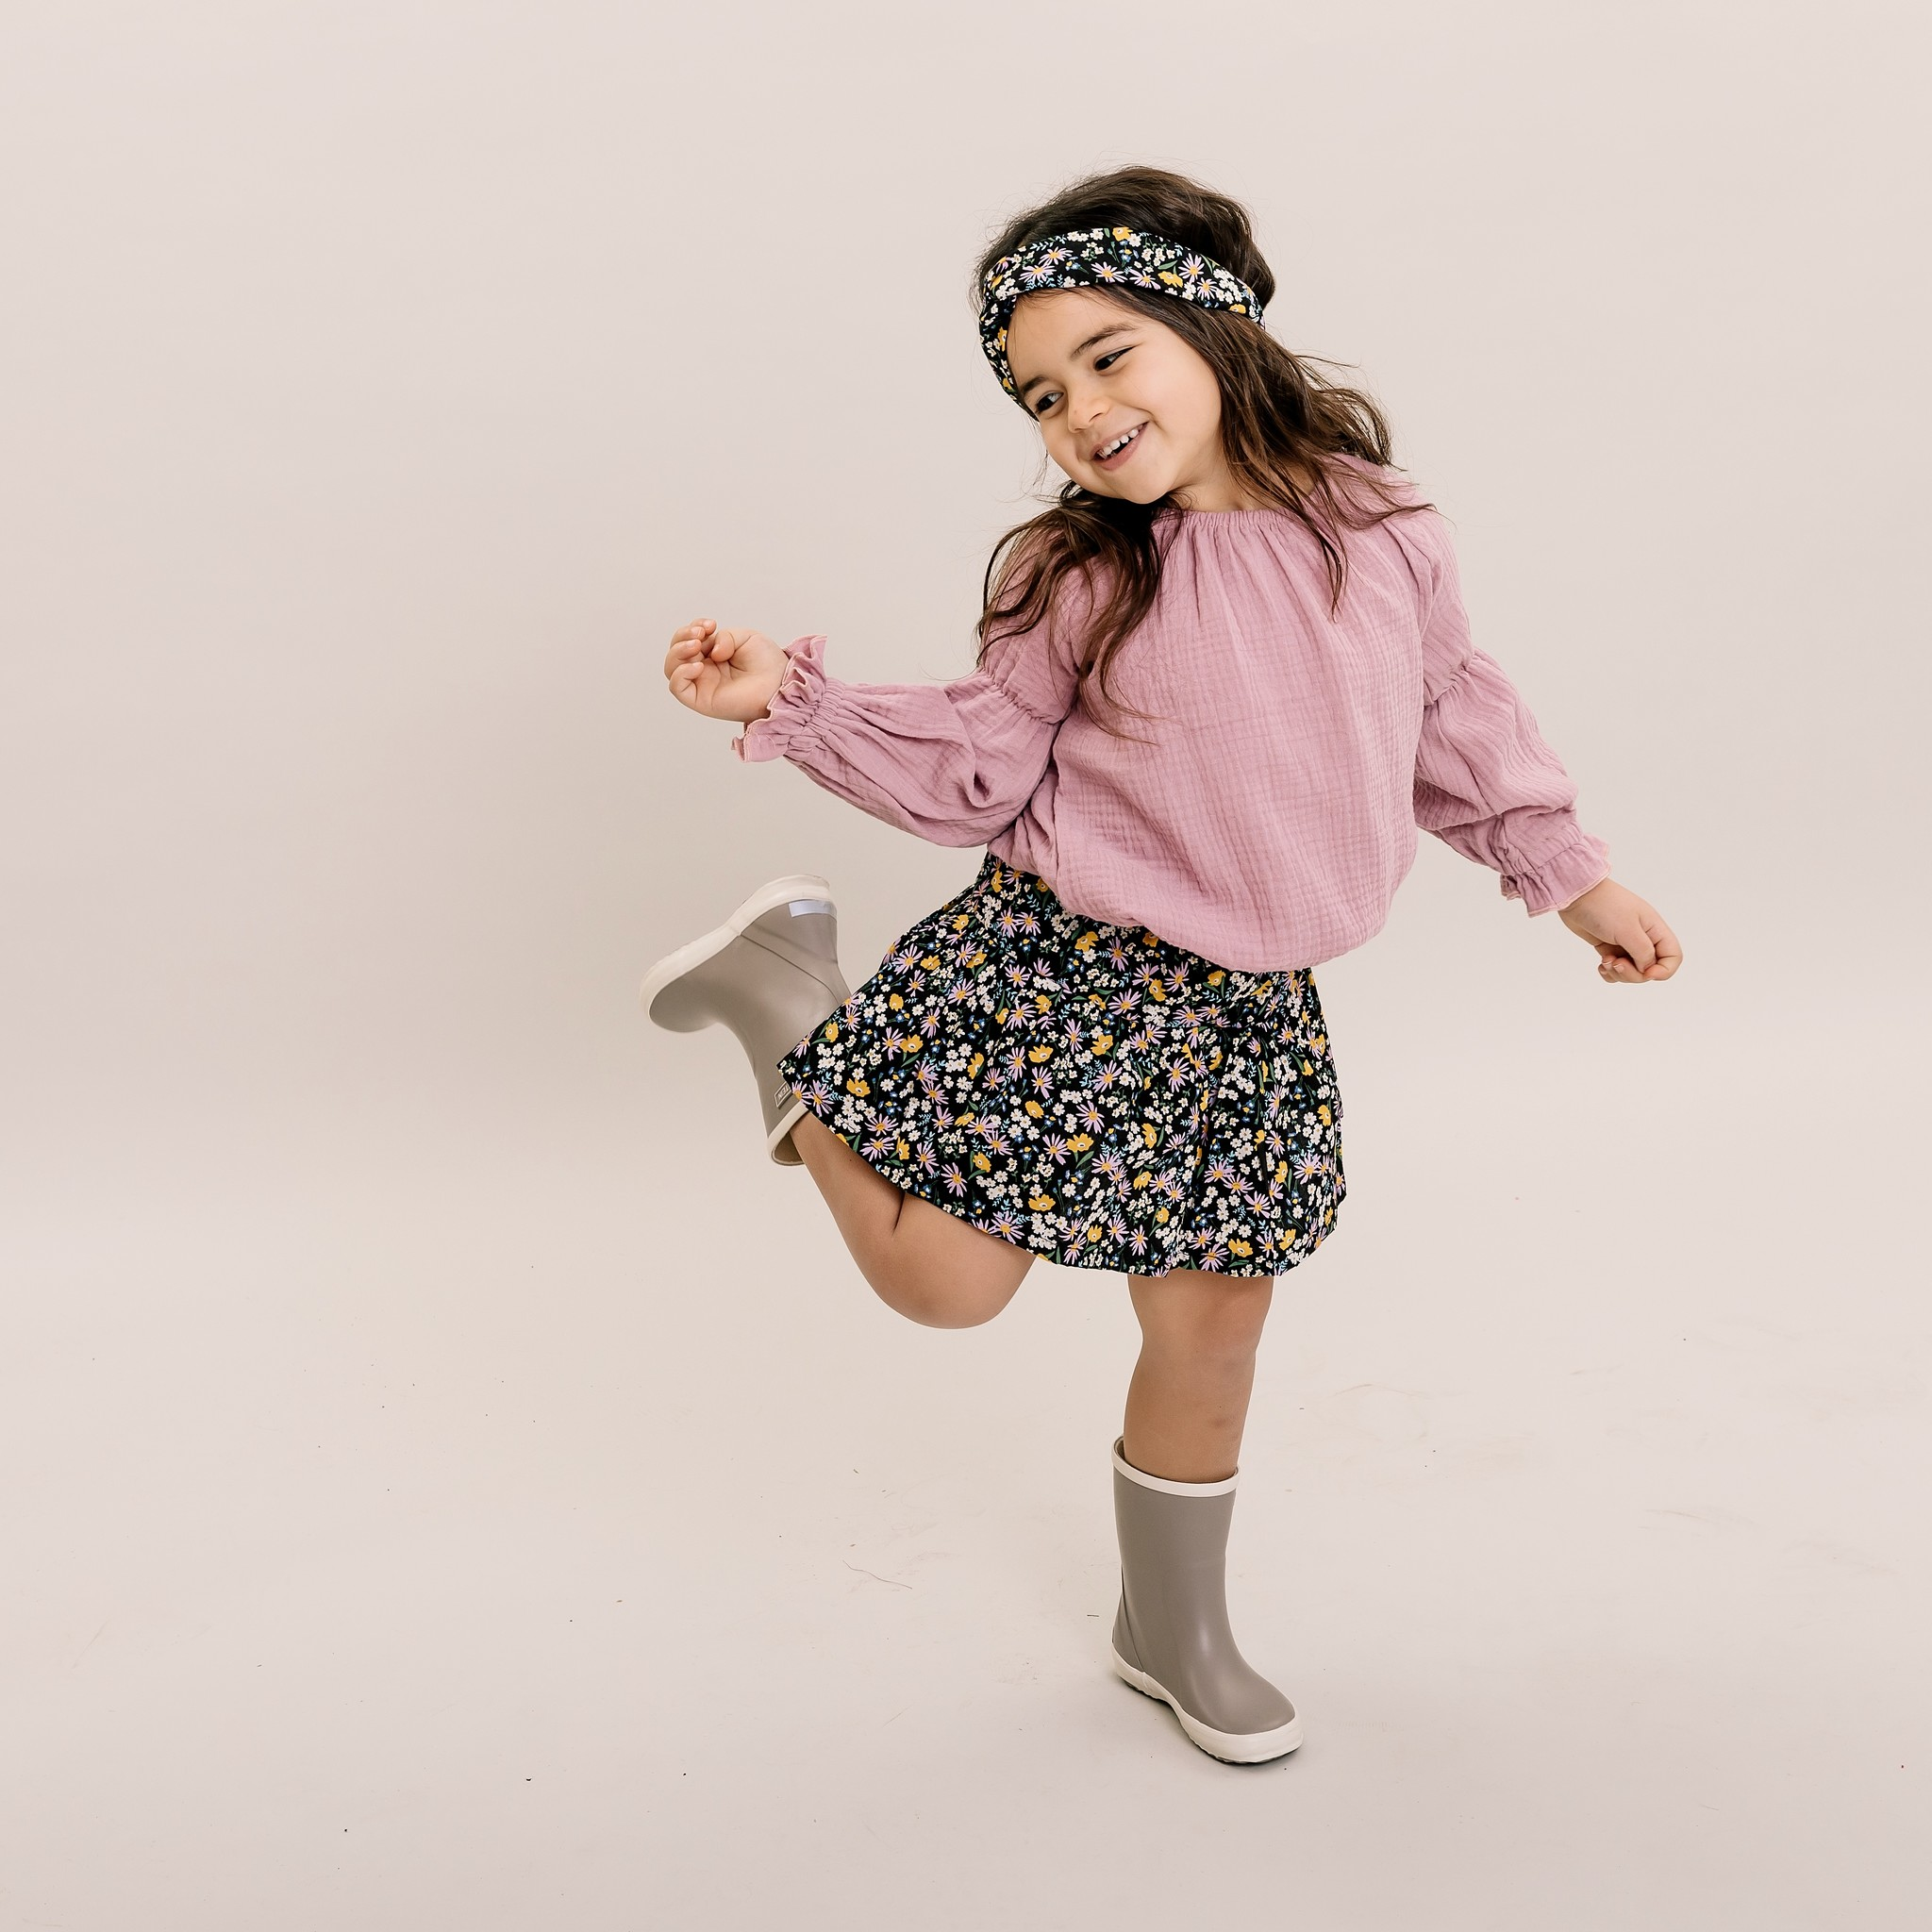 No Labels Kidswear SKIRT WITH FLORAL PRINT | PLEATED SKIRT FOR GIRLS | GIRL CLOTHES